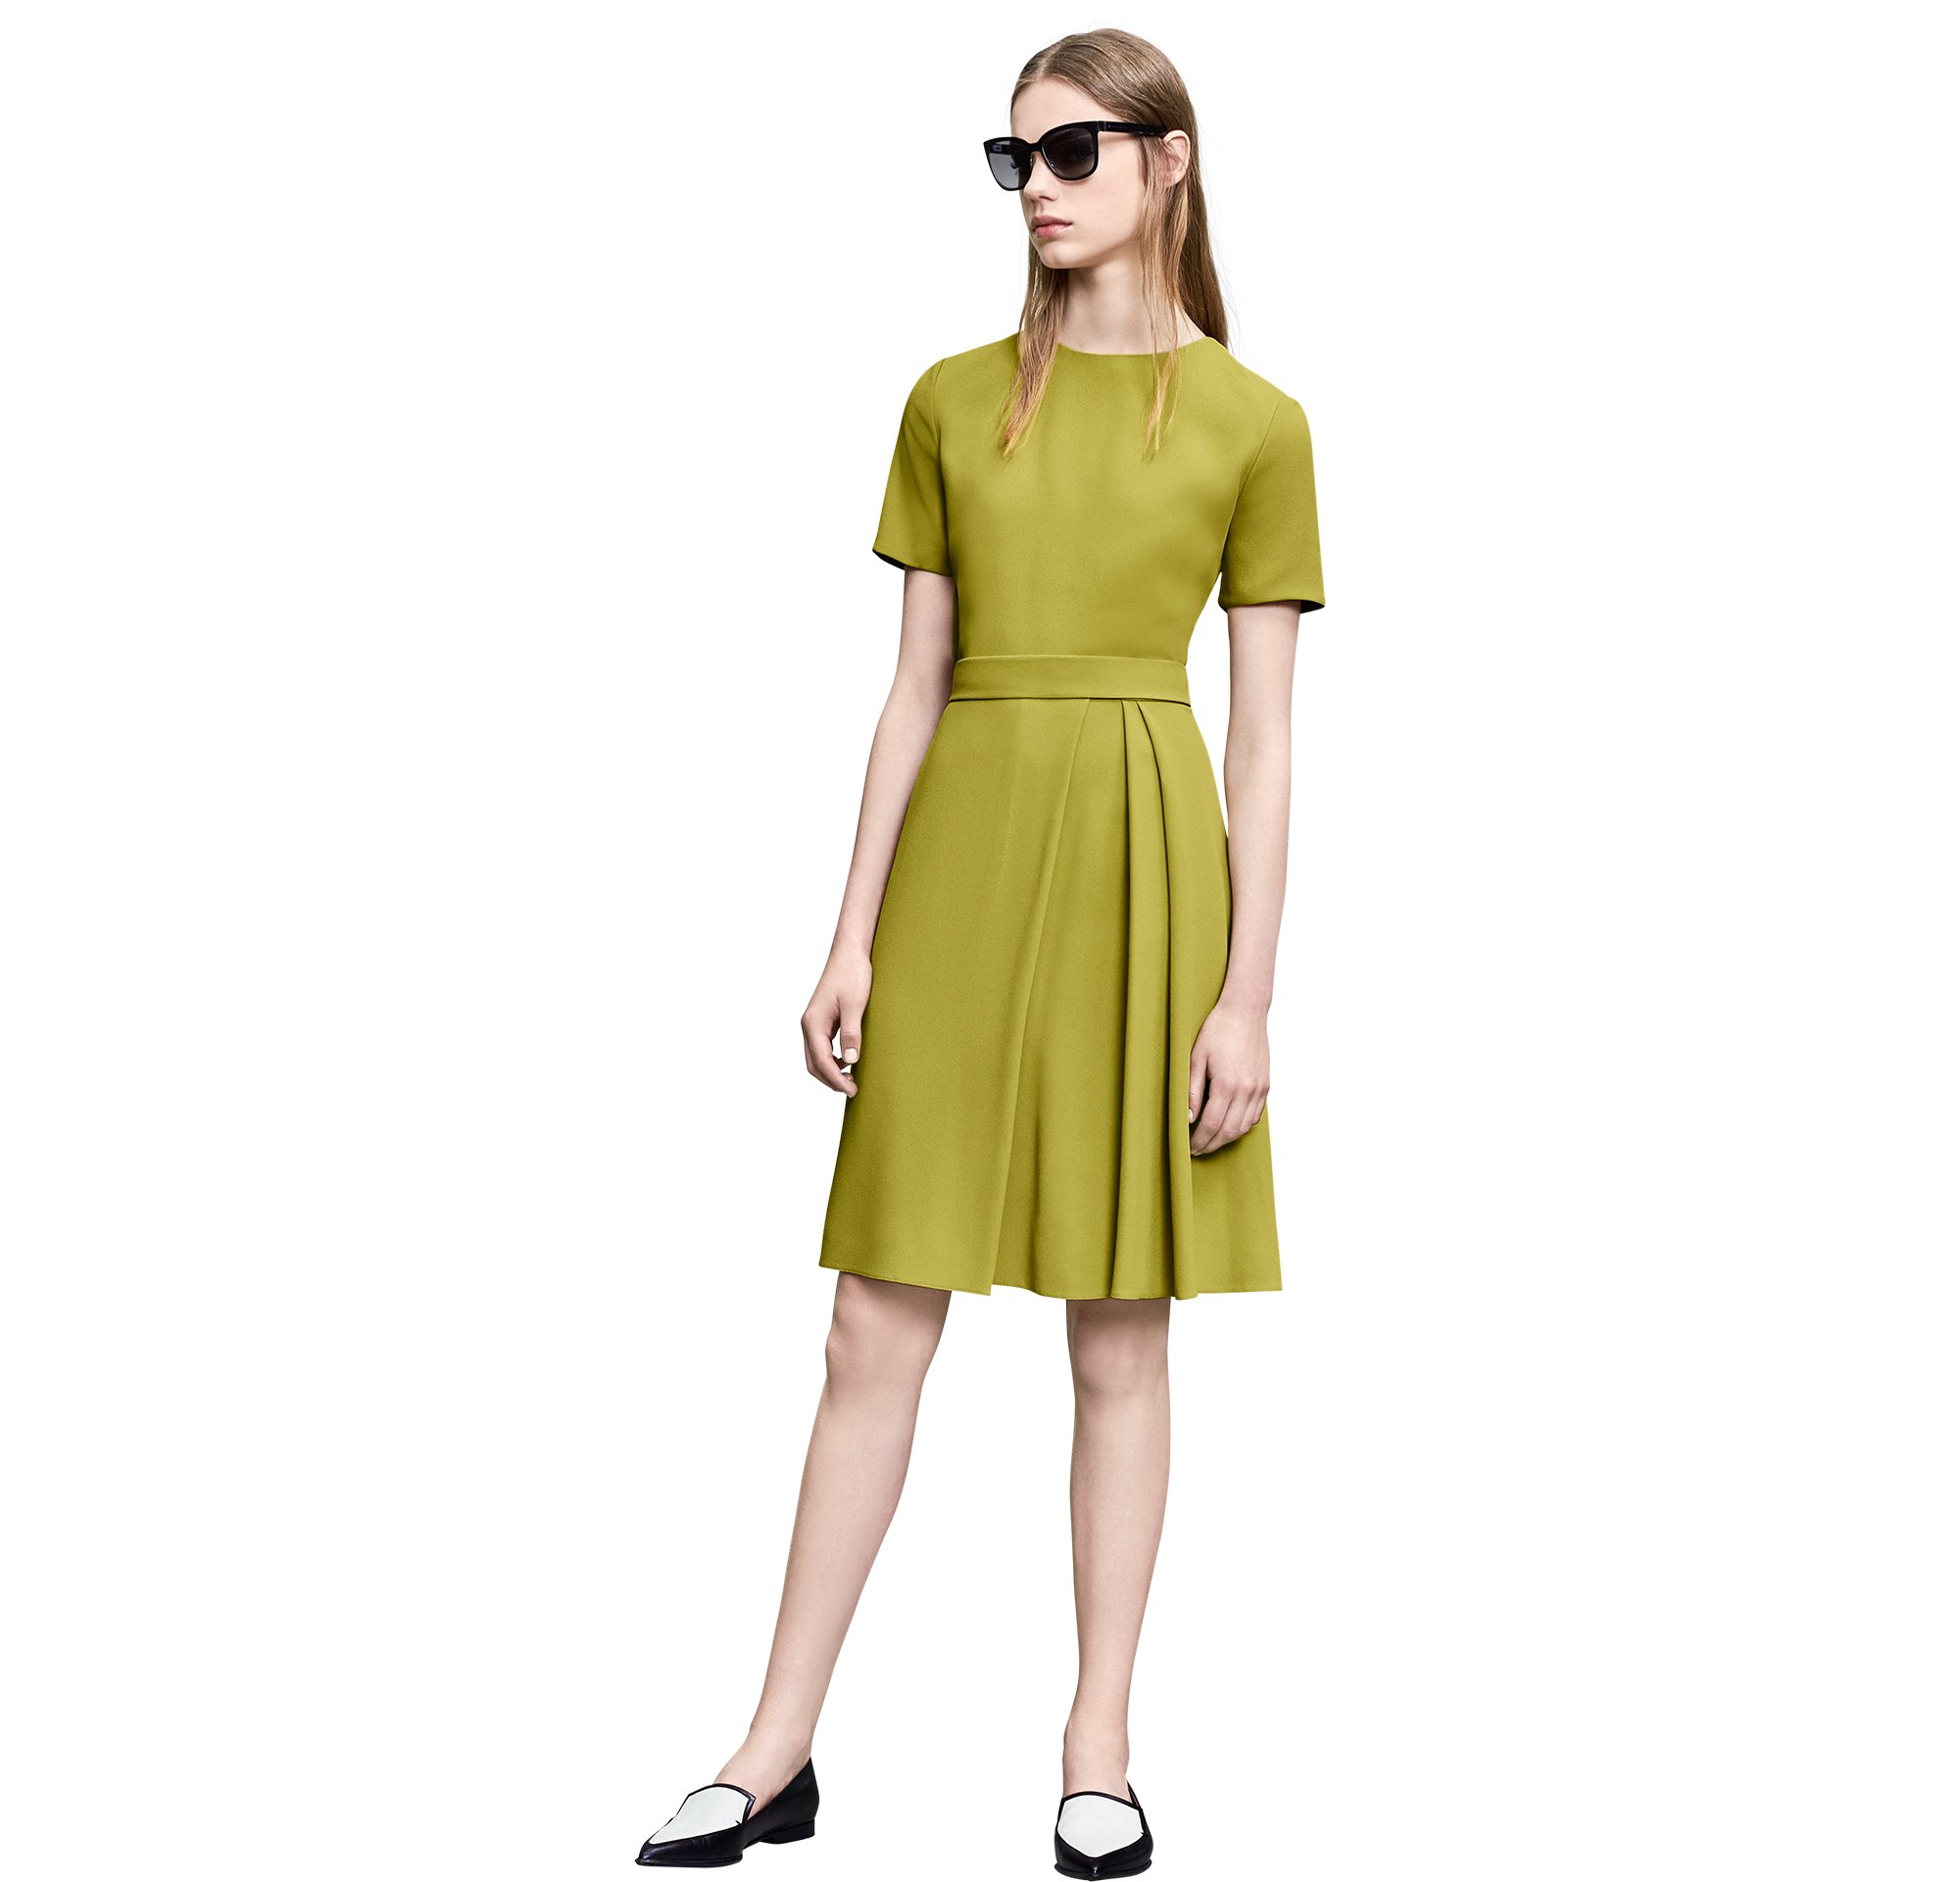 Dress, sunglasses and shoes by BOSS Womenswear